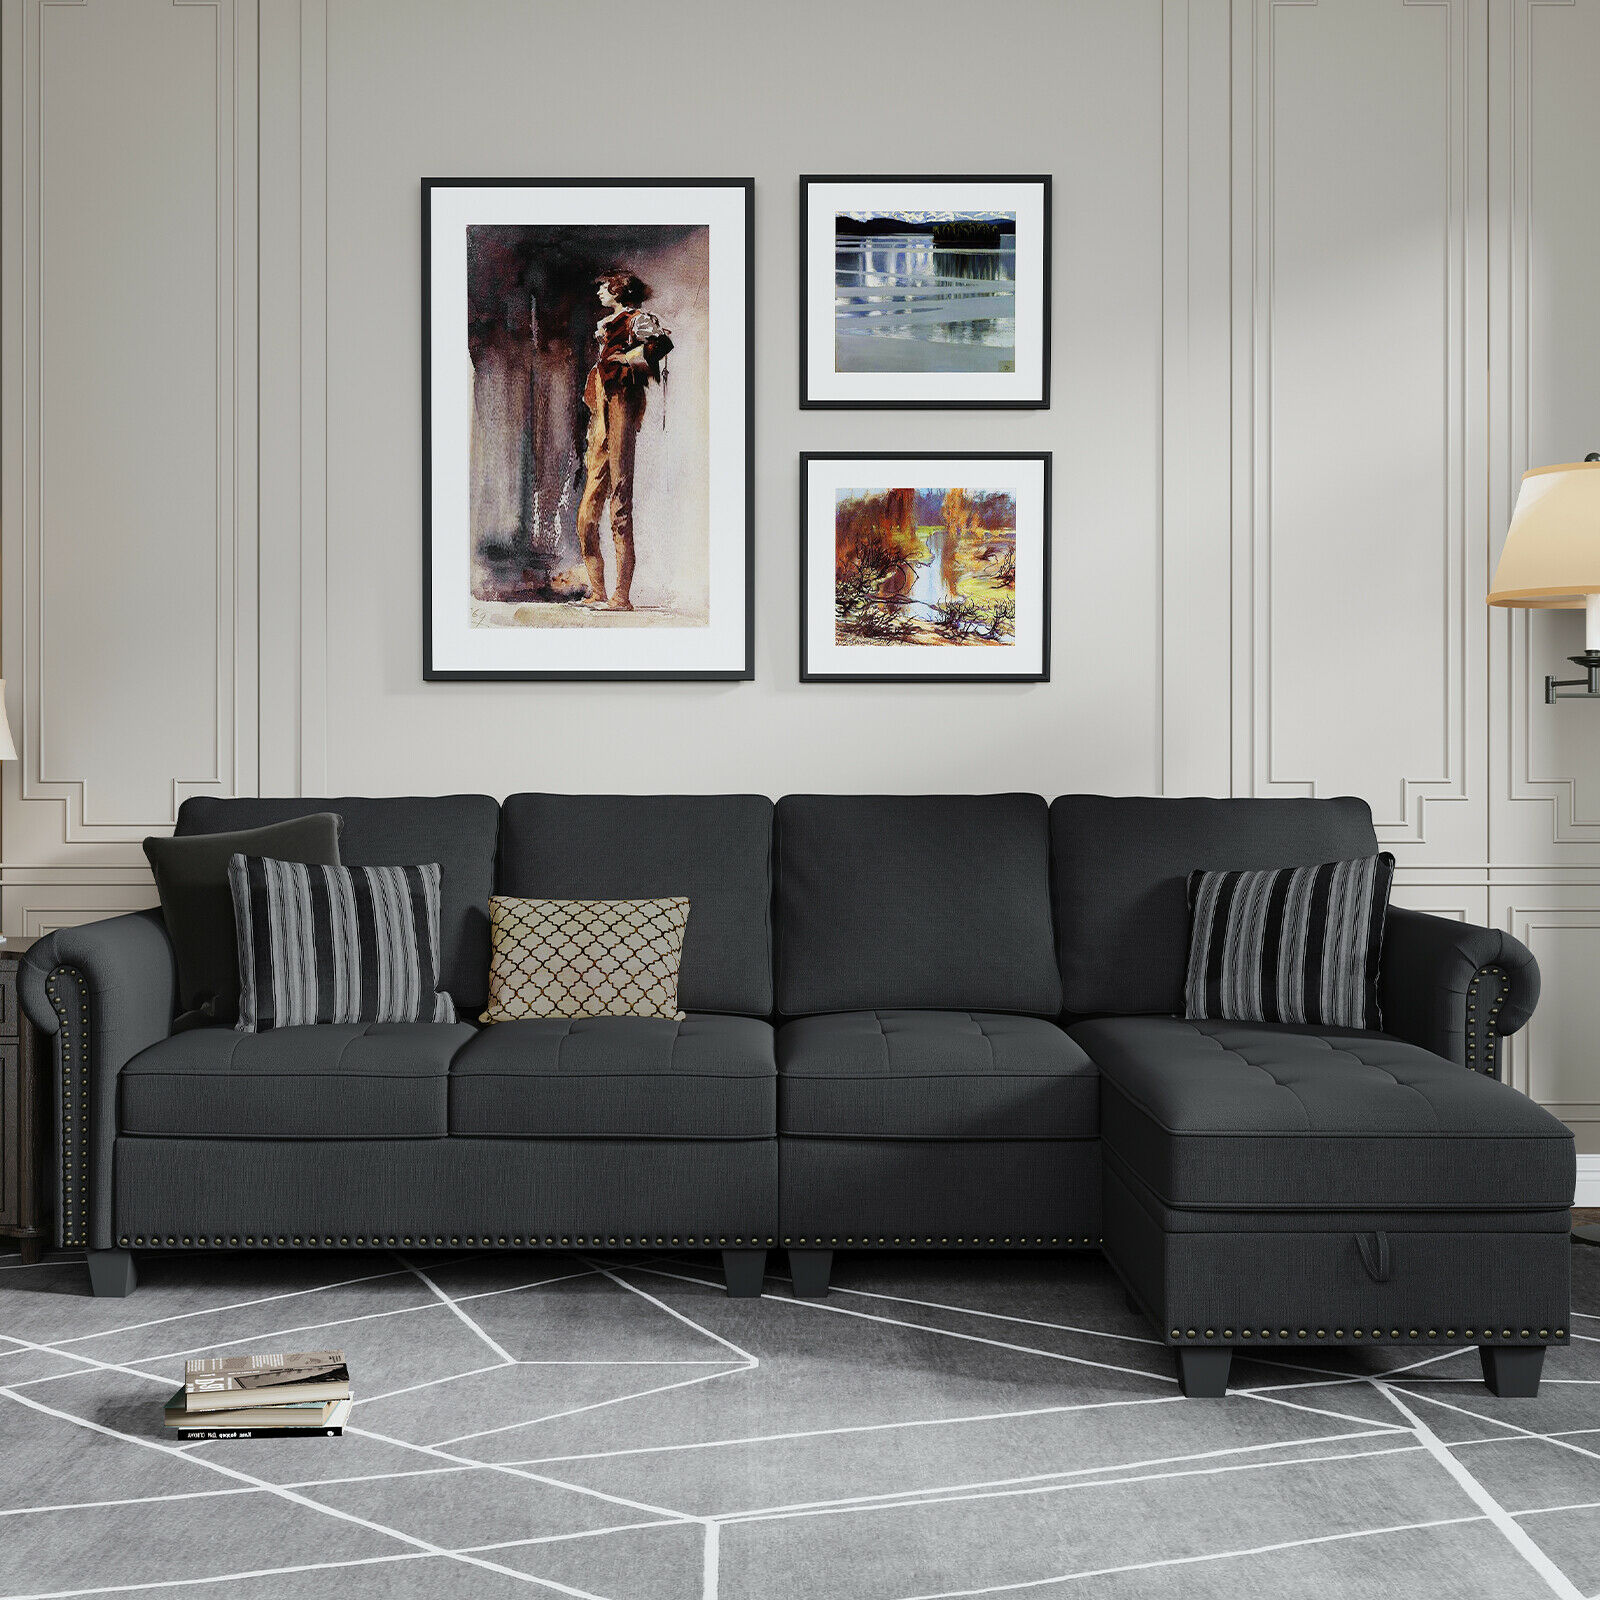 Hamilton Convertible Sofa For Sale Online Ebay